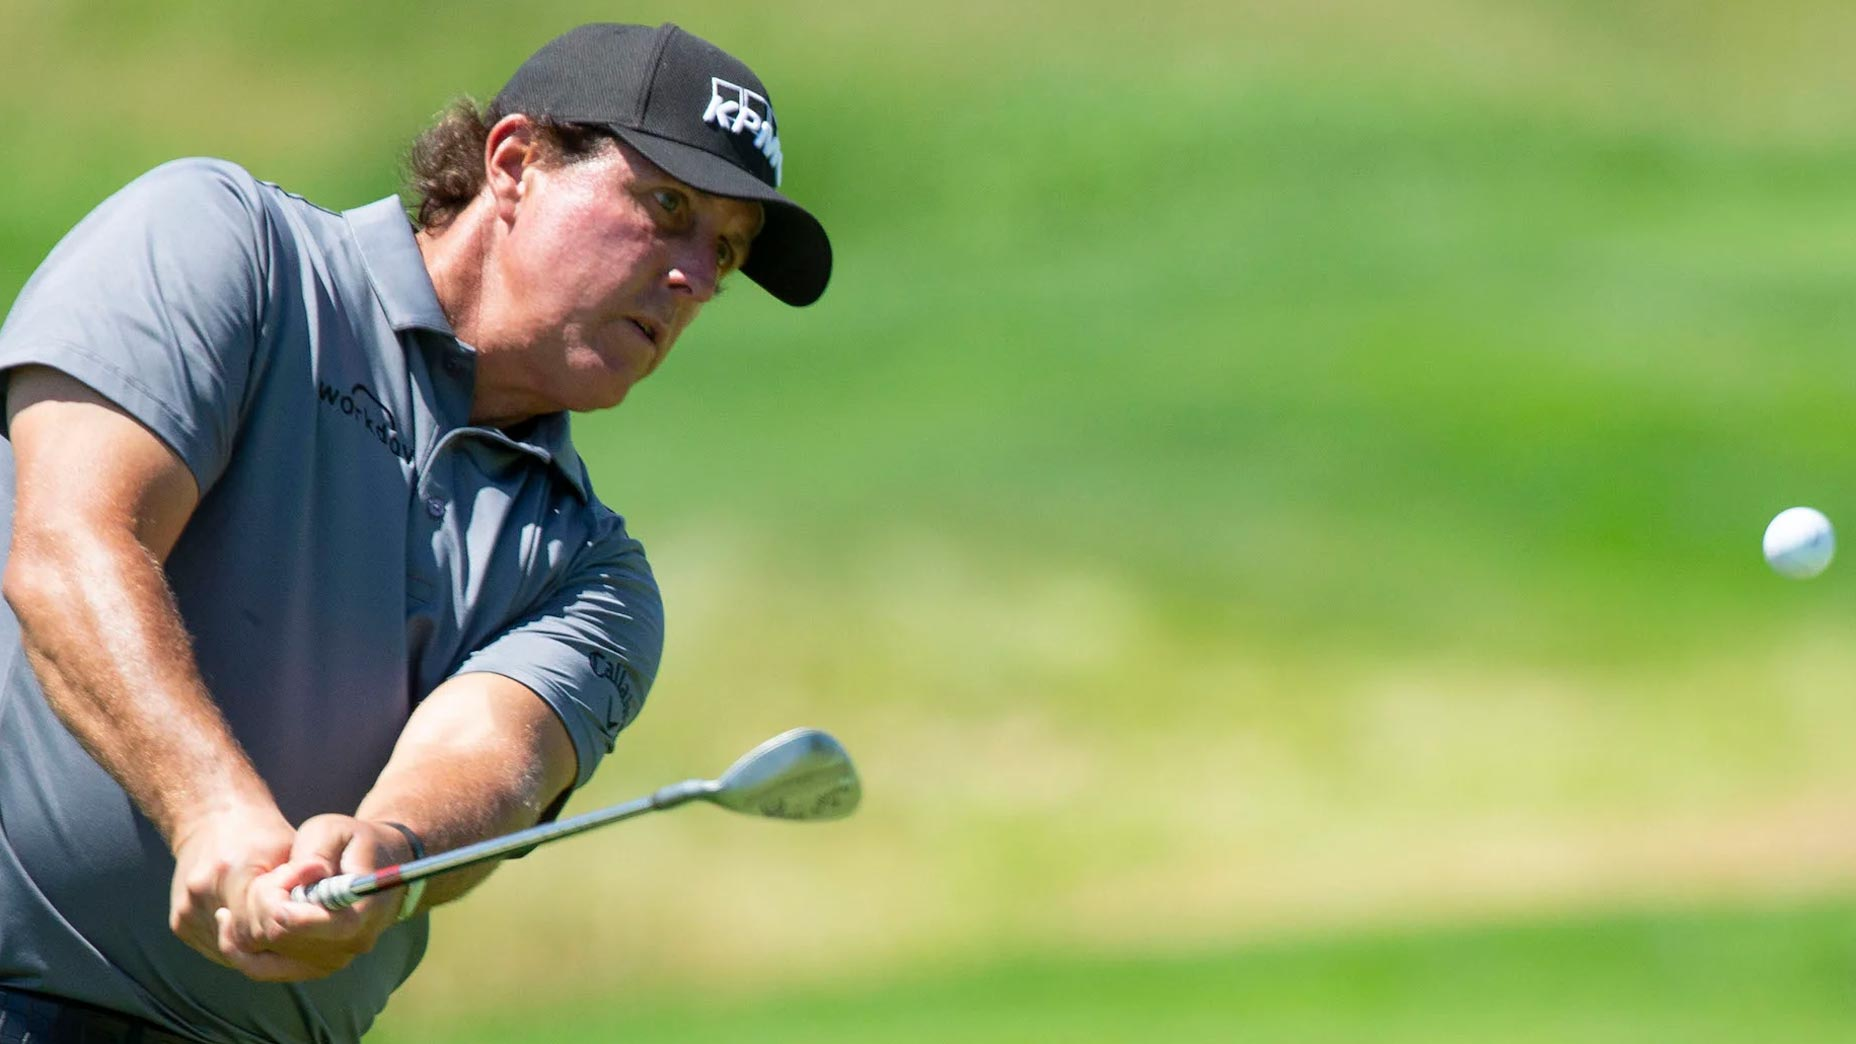 Phil Mickelson hits wedge shot